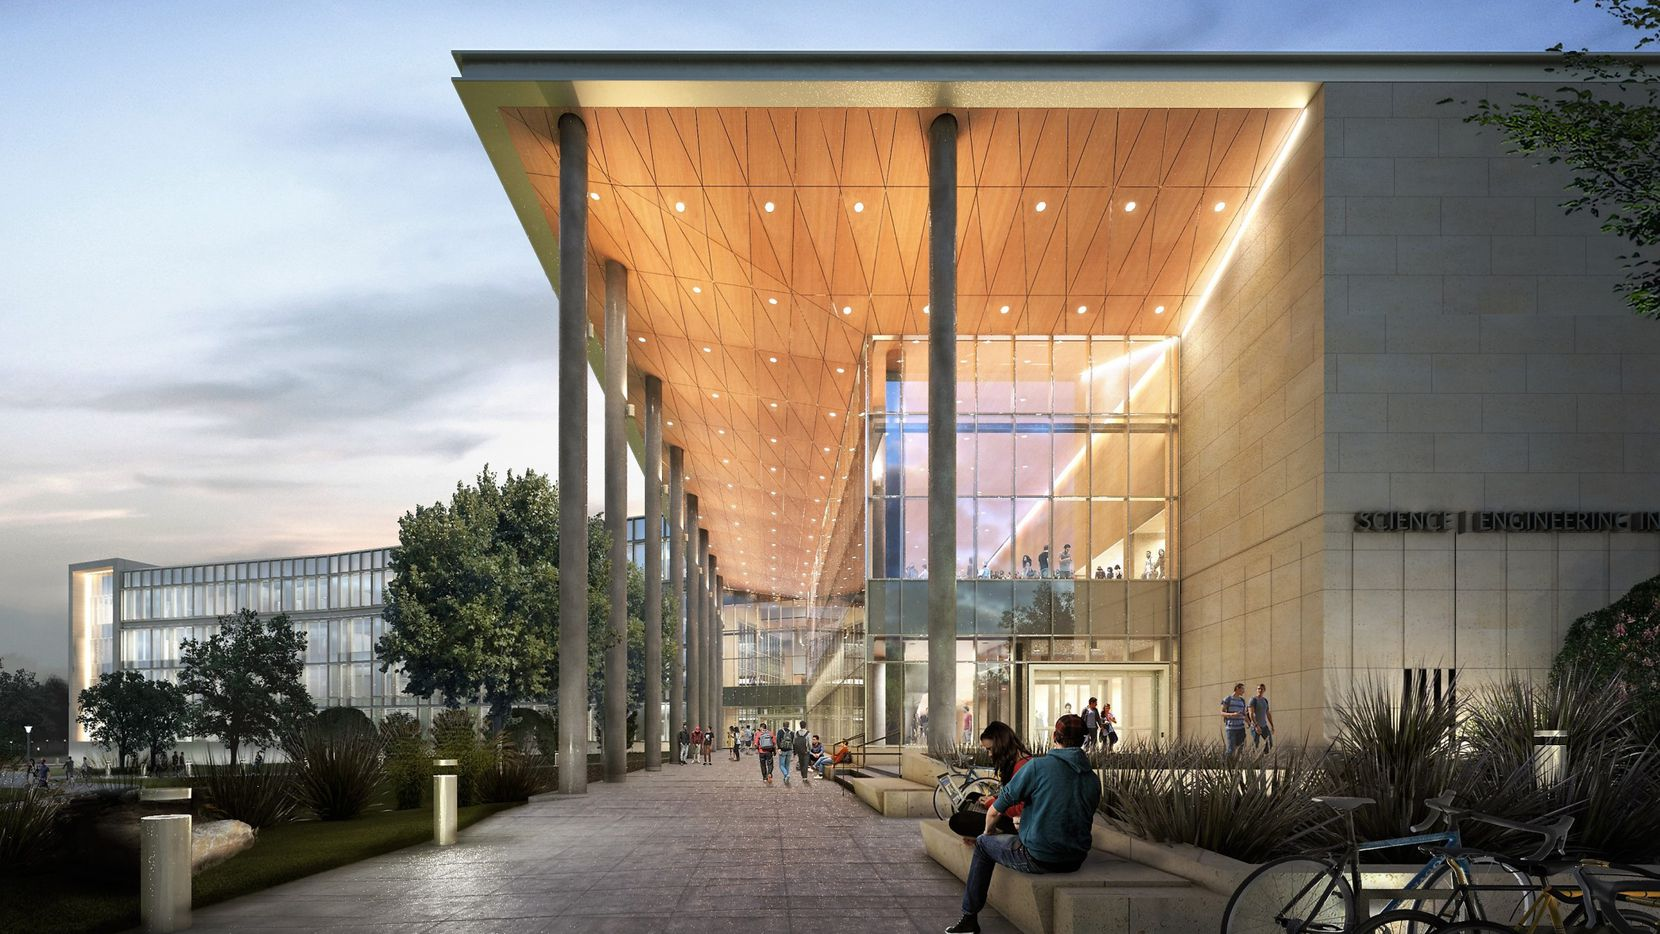 The Science and Engineering Innovation and Research building is scheduled to open sometime in 2018 and will be home to several disciplines. (Illustration from University of Texas at Arlington)